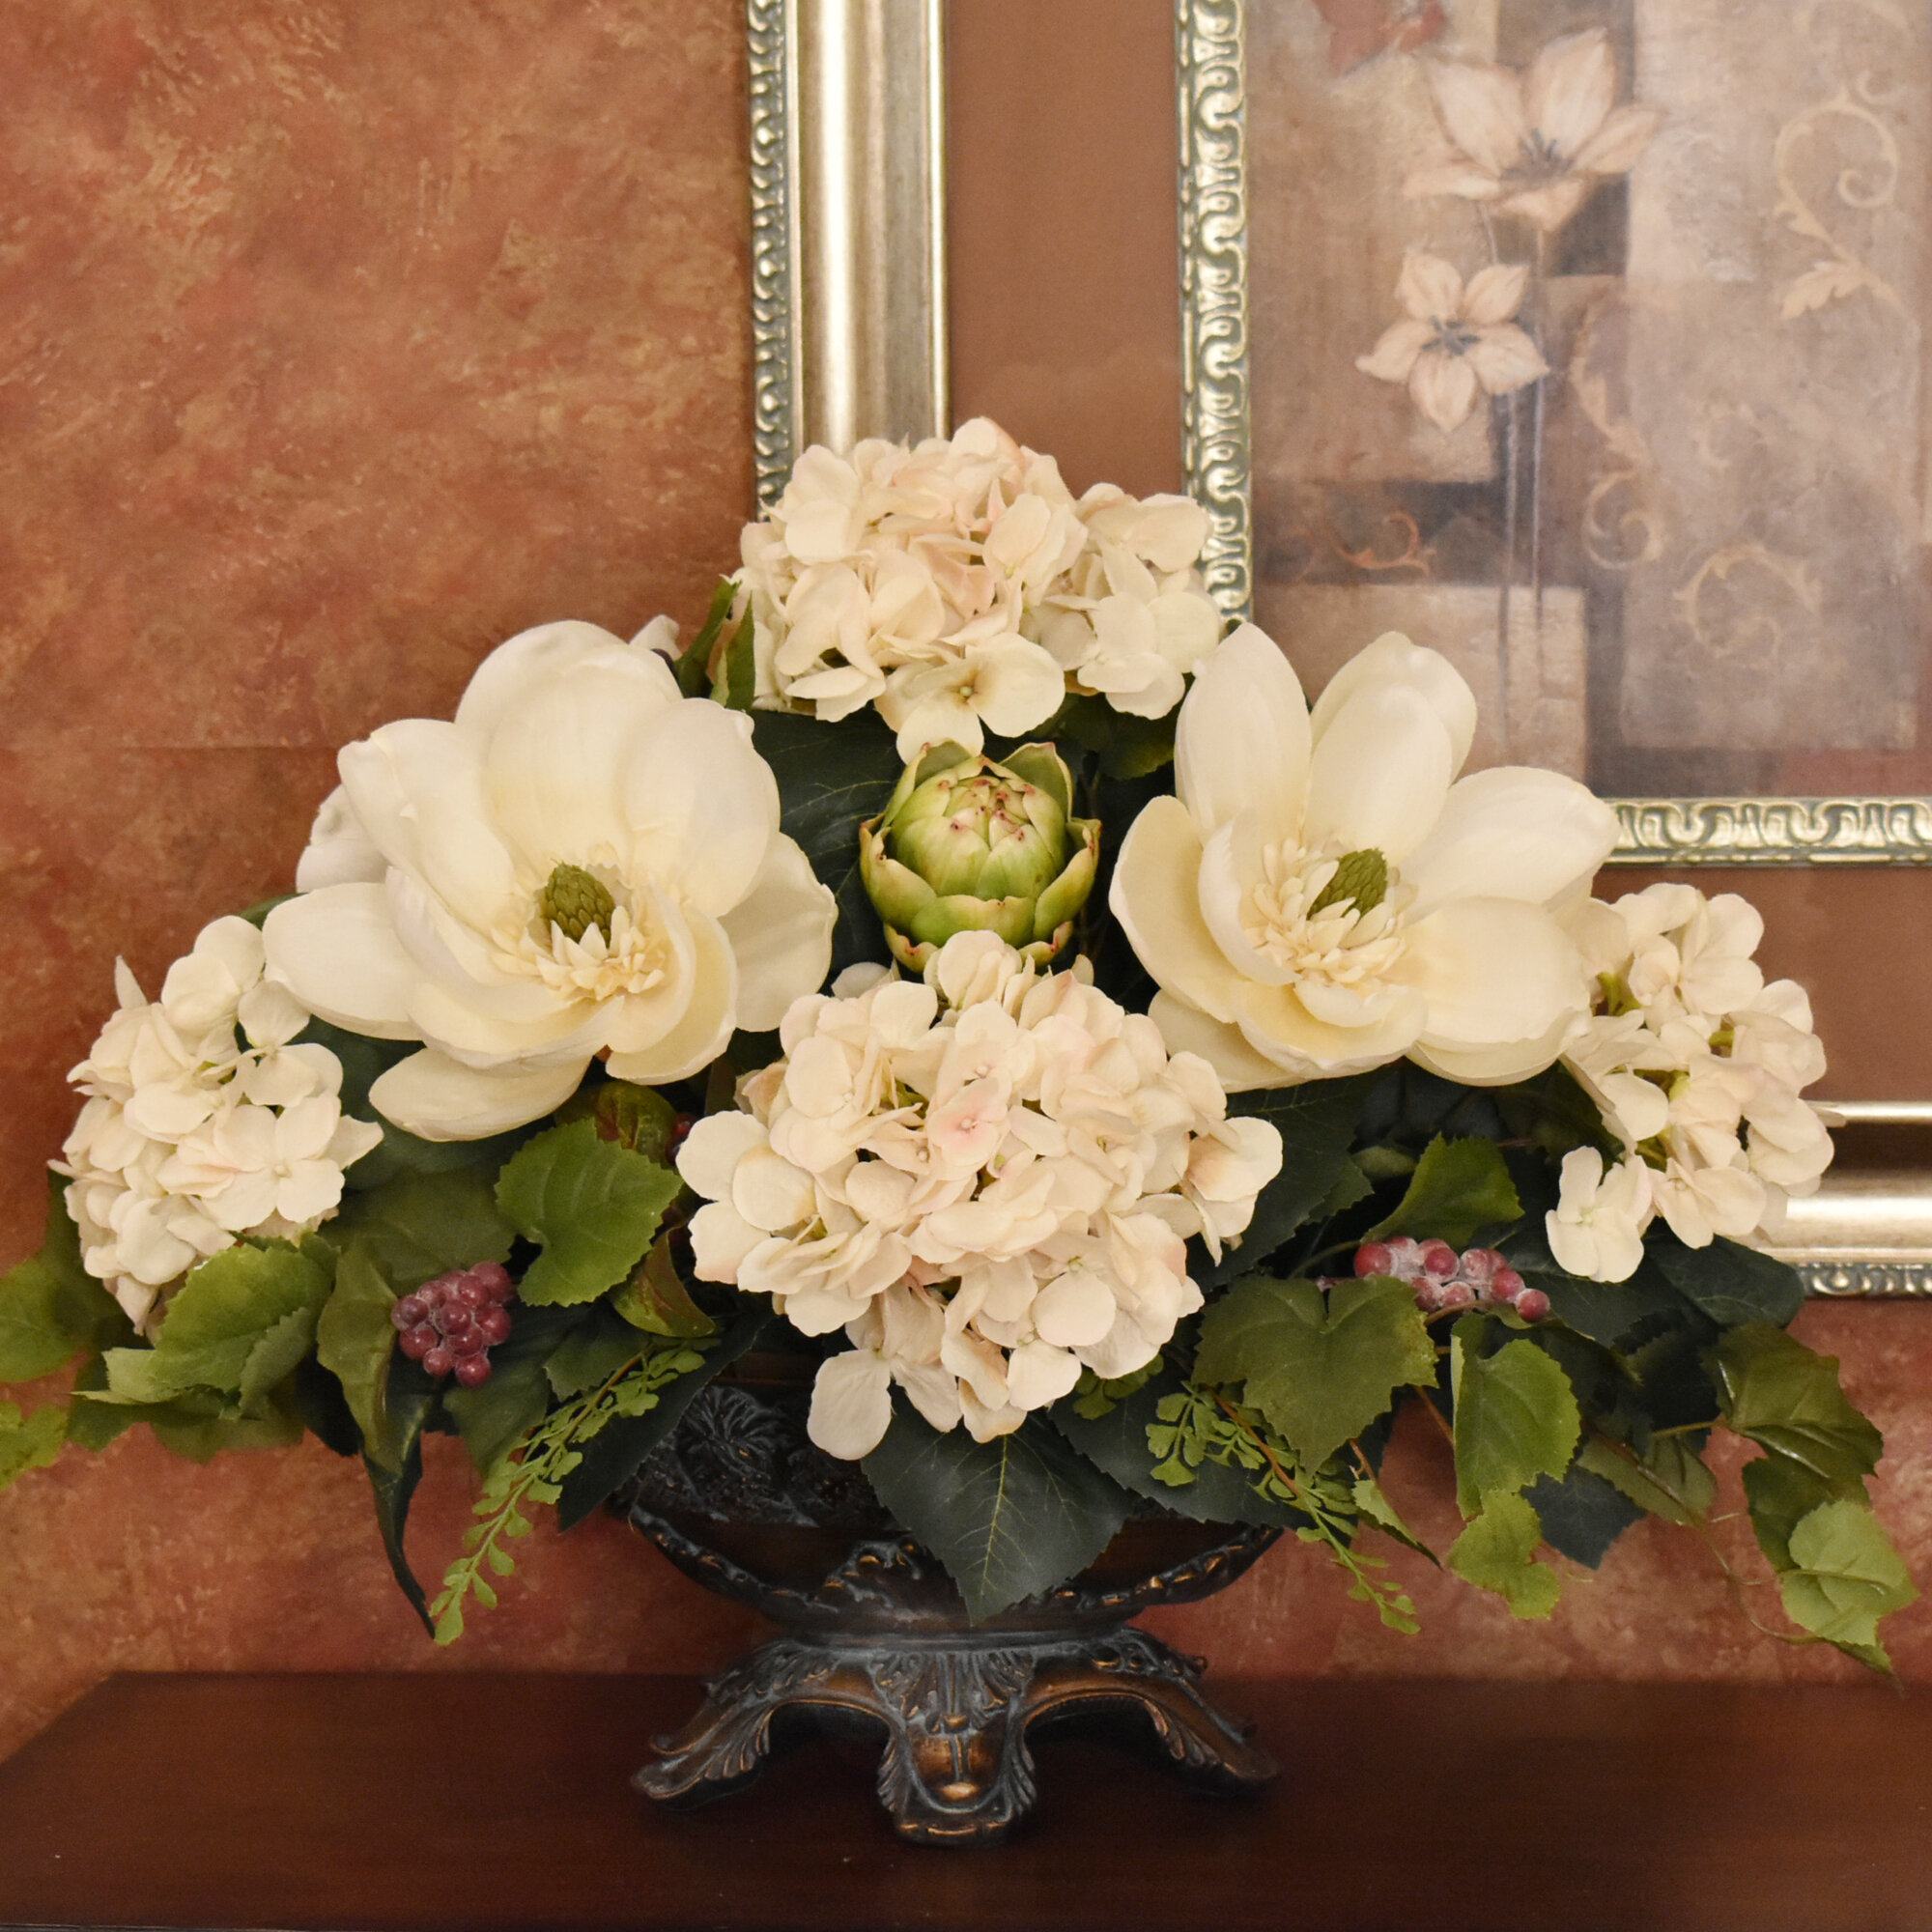 Floral Home Decor Cream Magnolia And Hydrangea Silk Floral Centerpiecein Embossed Oval Vase Reviews Wayfair